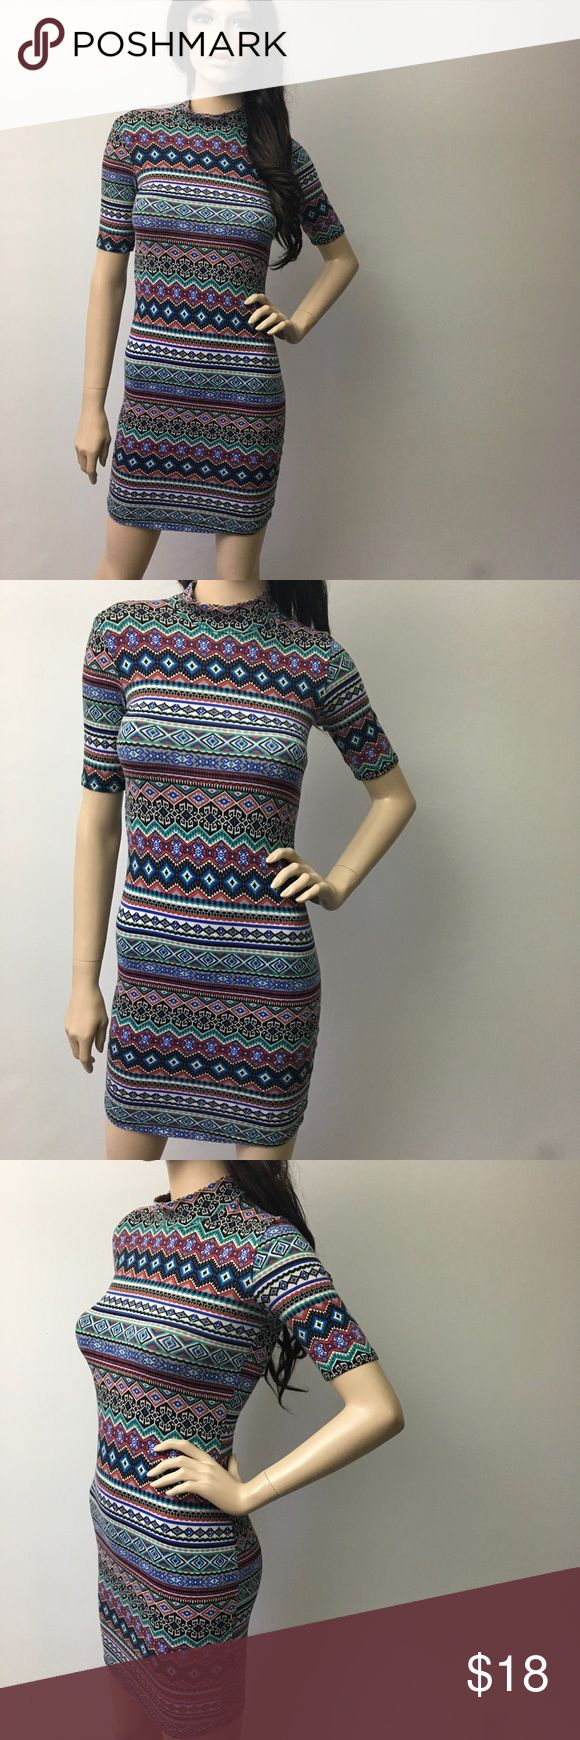 Aztec Bodycon Dress With  Neck This dress is sexy! Stretchy fabric. Bodycon style. It has a small turtle neck.  Forever 21 Dresses